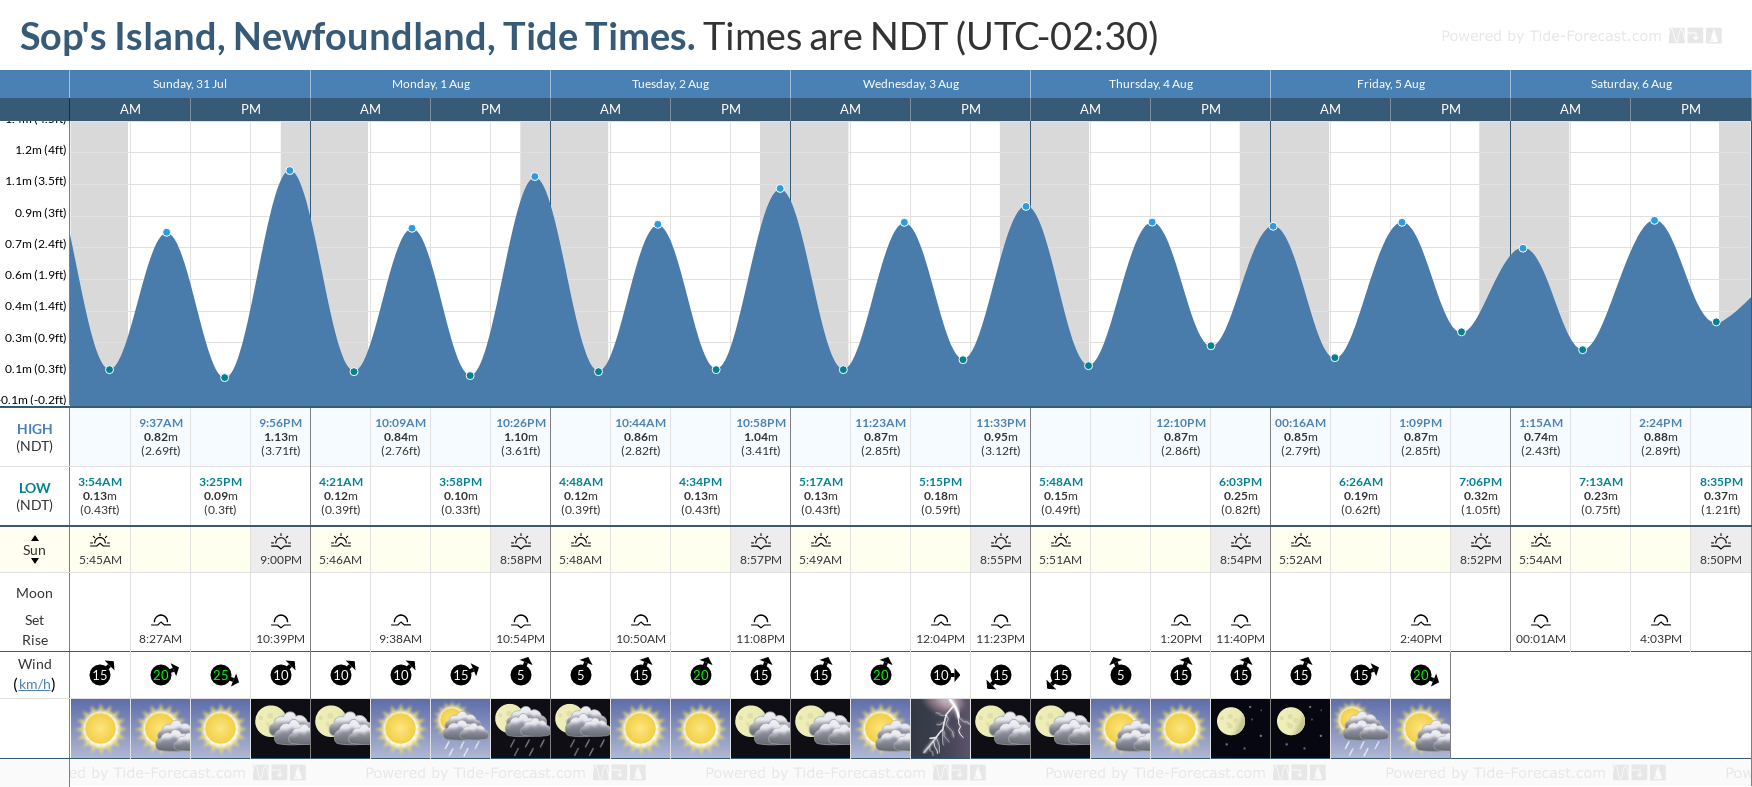 Sop's Island, Newfoundland Tide Chart including high and low tide tide times for the next 7 days